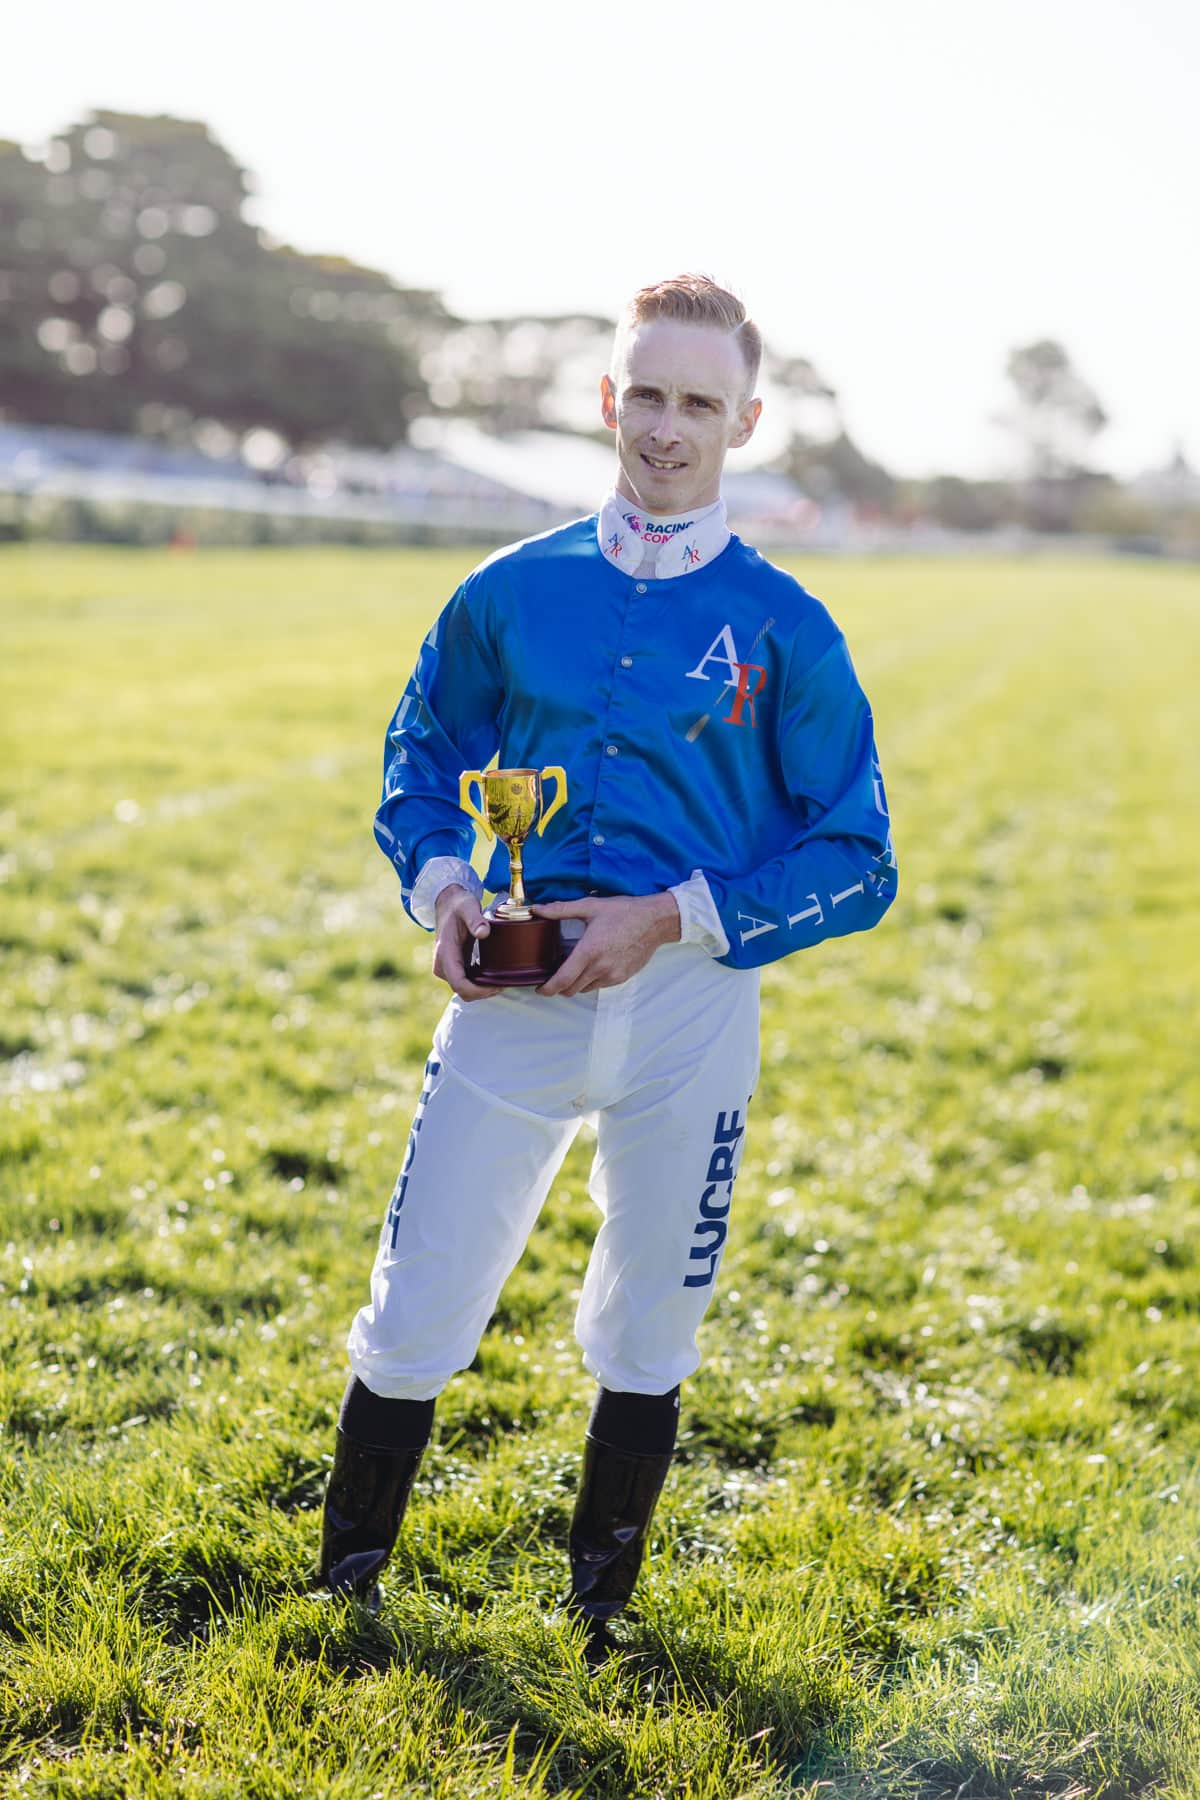 jockey winner mornington cup 2016 - best portrait